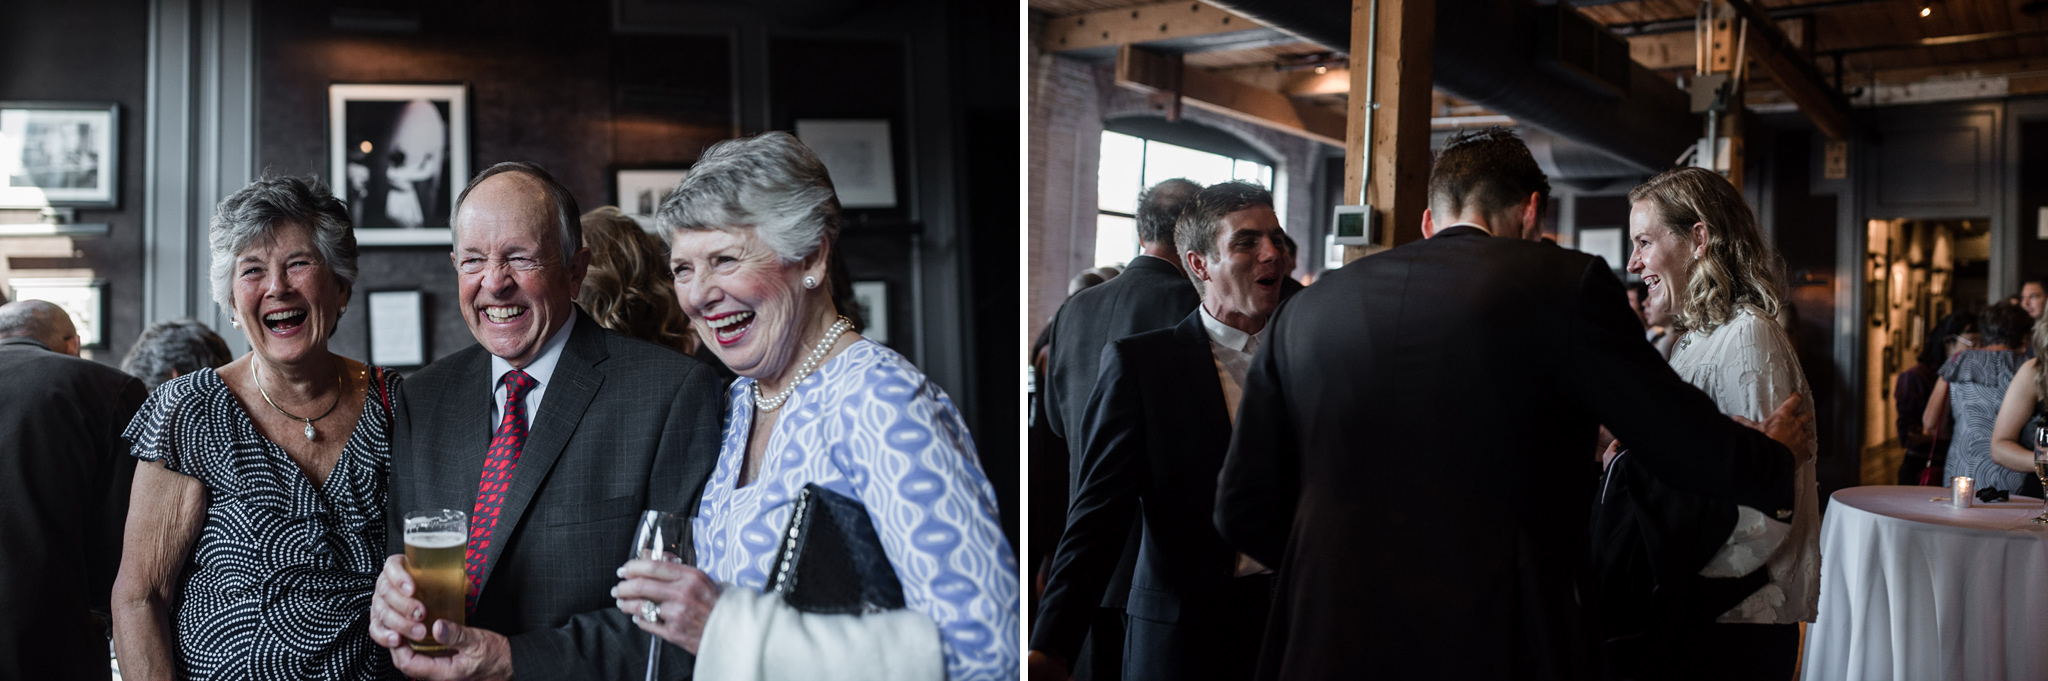 090-guests-candids-cocktail-reception-wedding-downtown-toronto.jpg